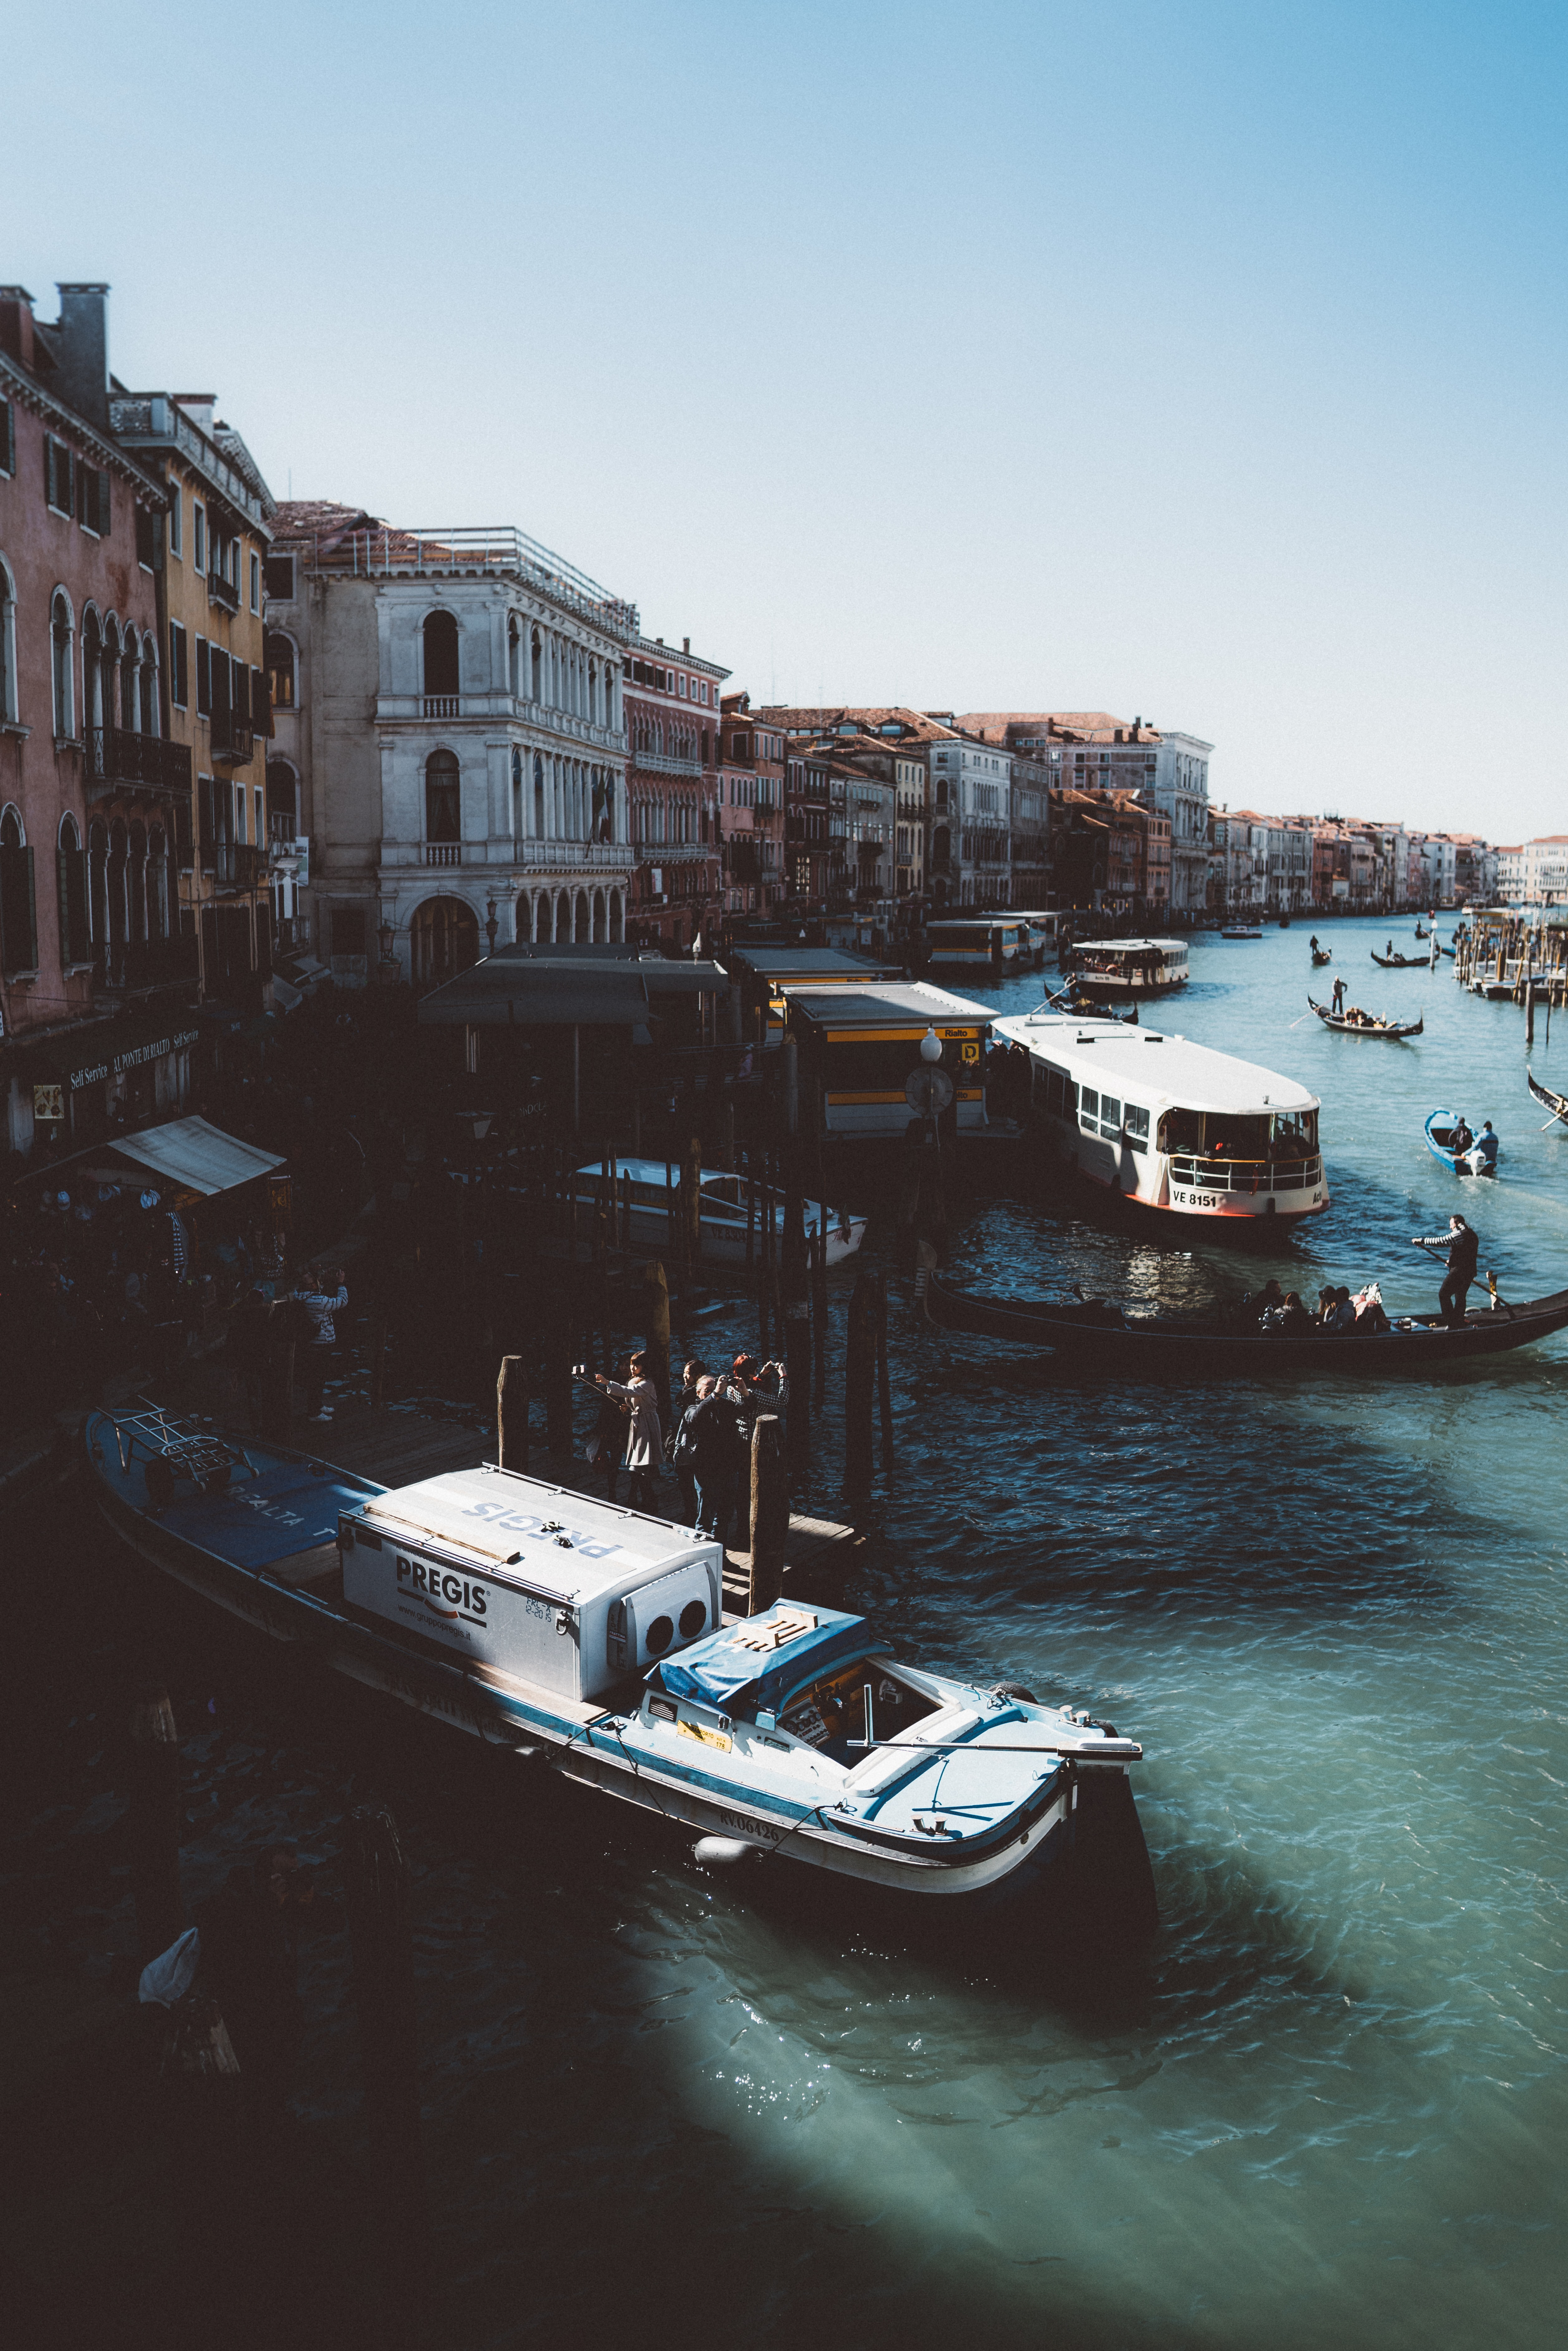 Boats and water buses on the Grand Canal in Venice